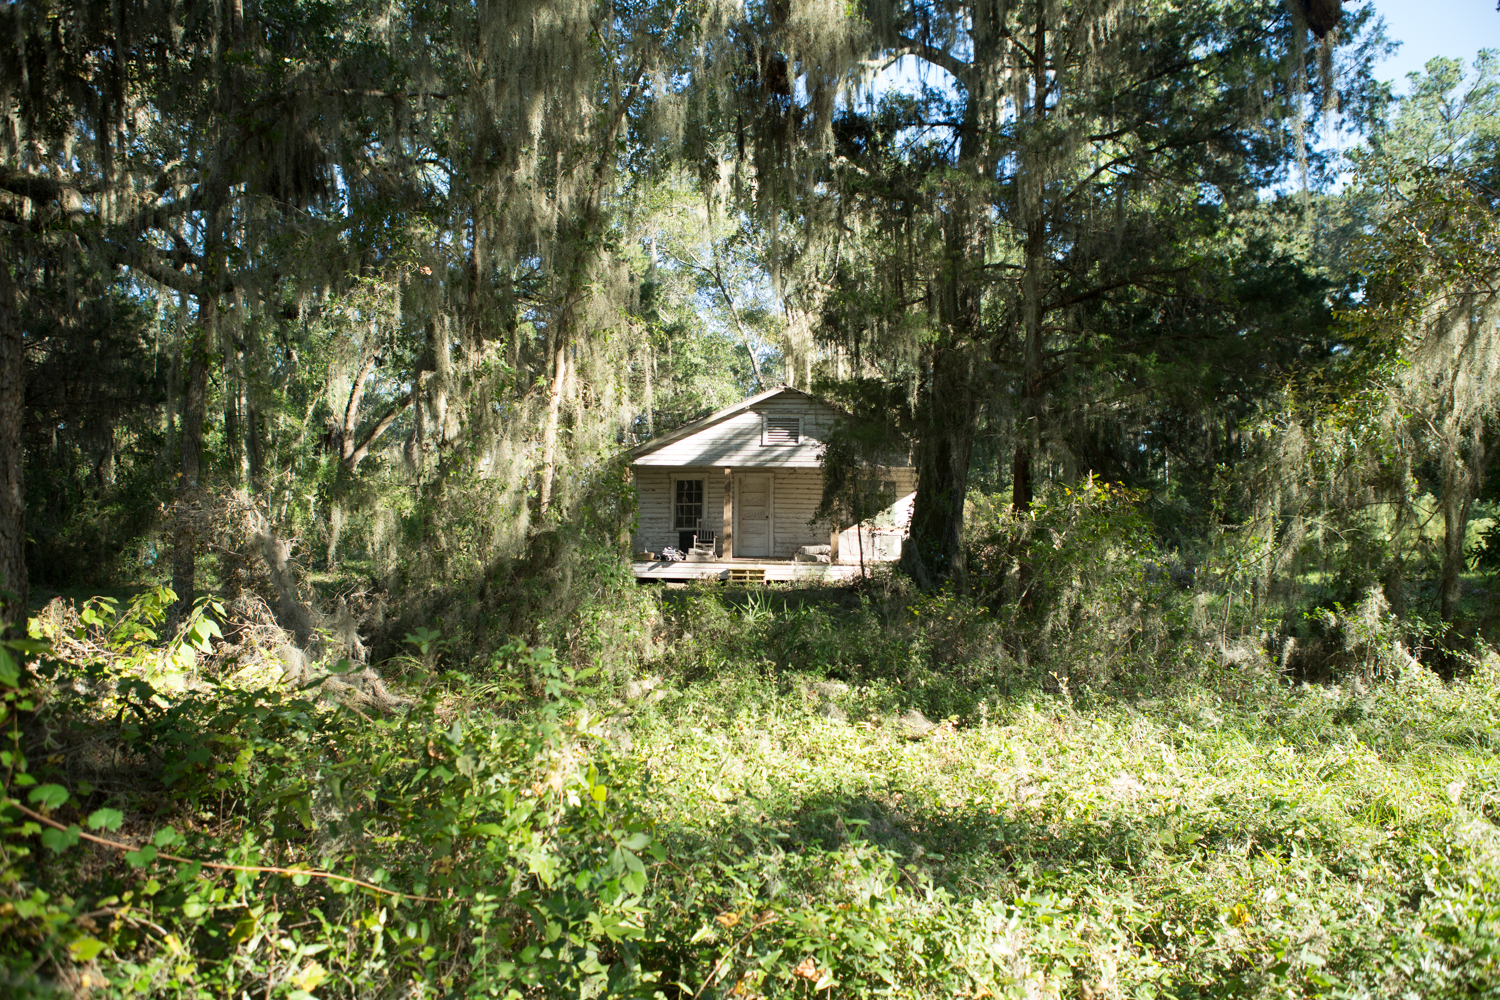 Gullah Geechee elder Charles Jordan was raised in this house as a child—his father was a former slave whose family stayed on the property to take care of the white man who owned the house until he died.